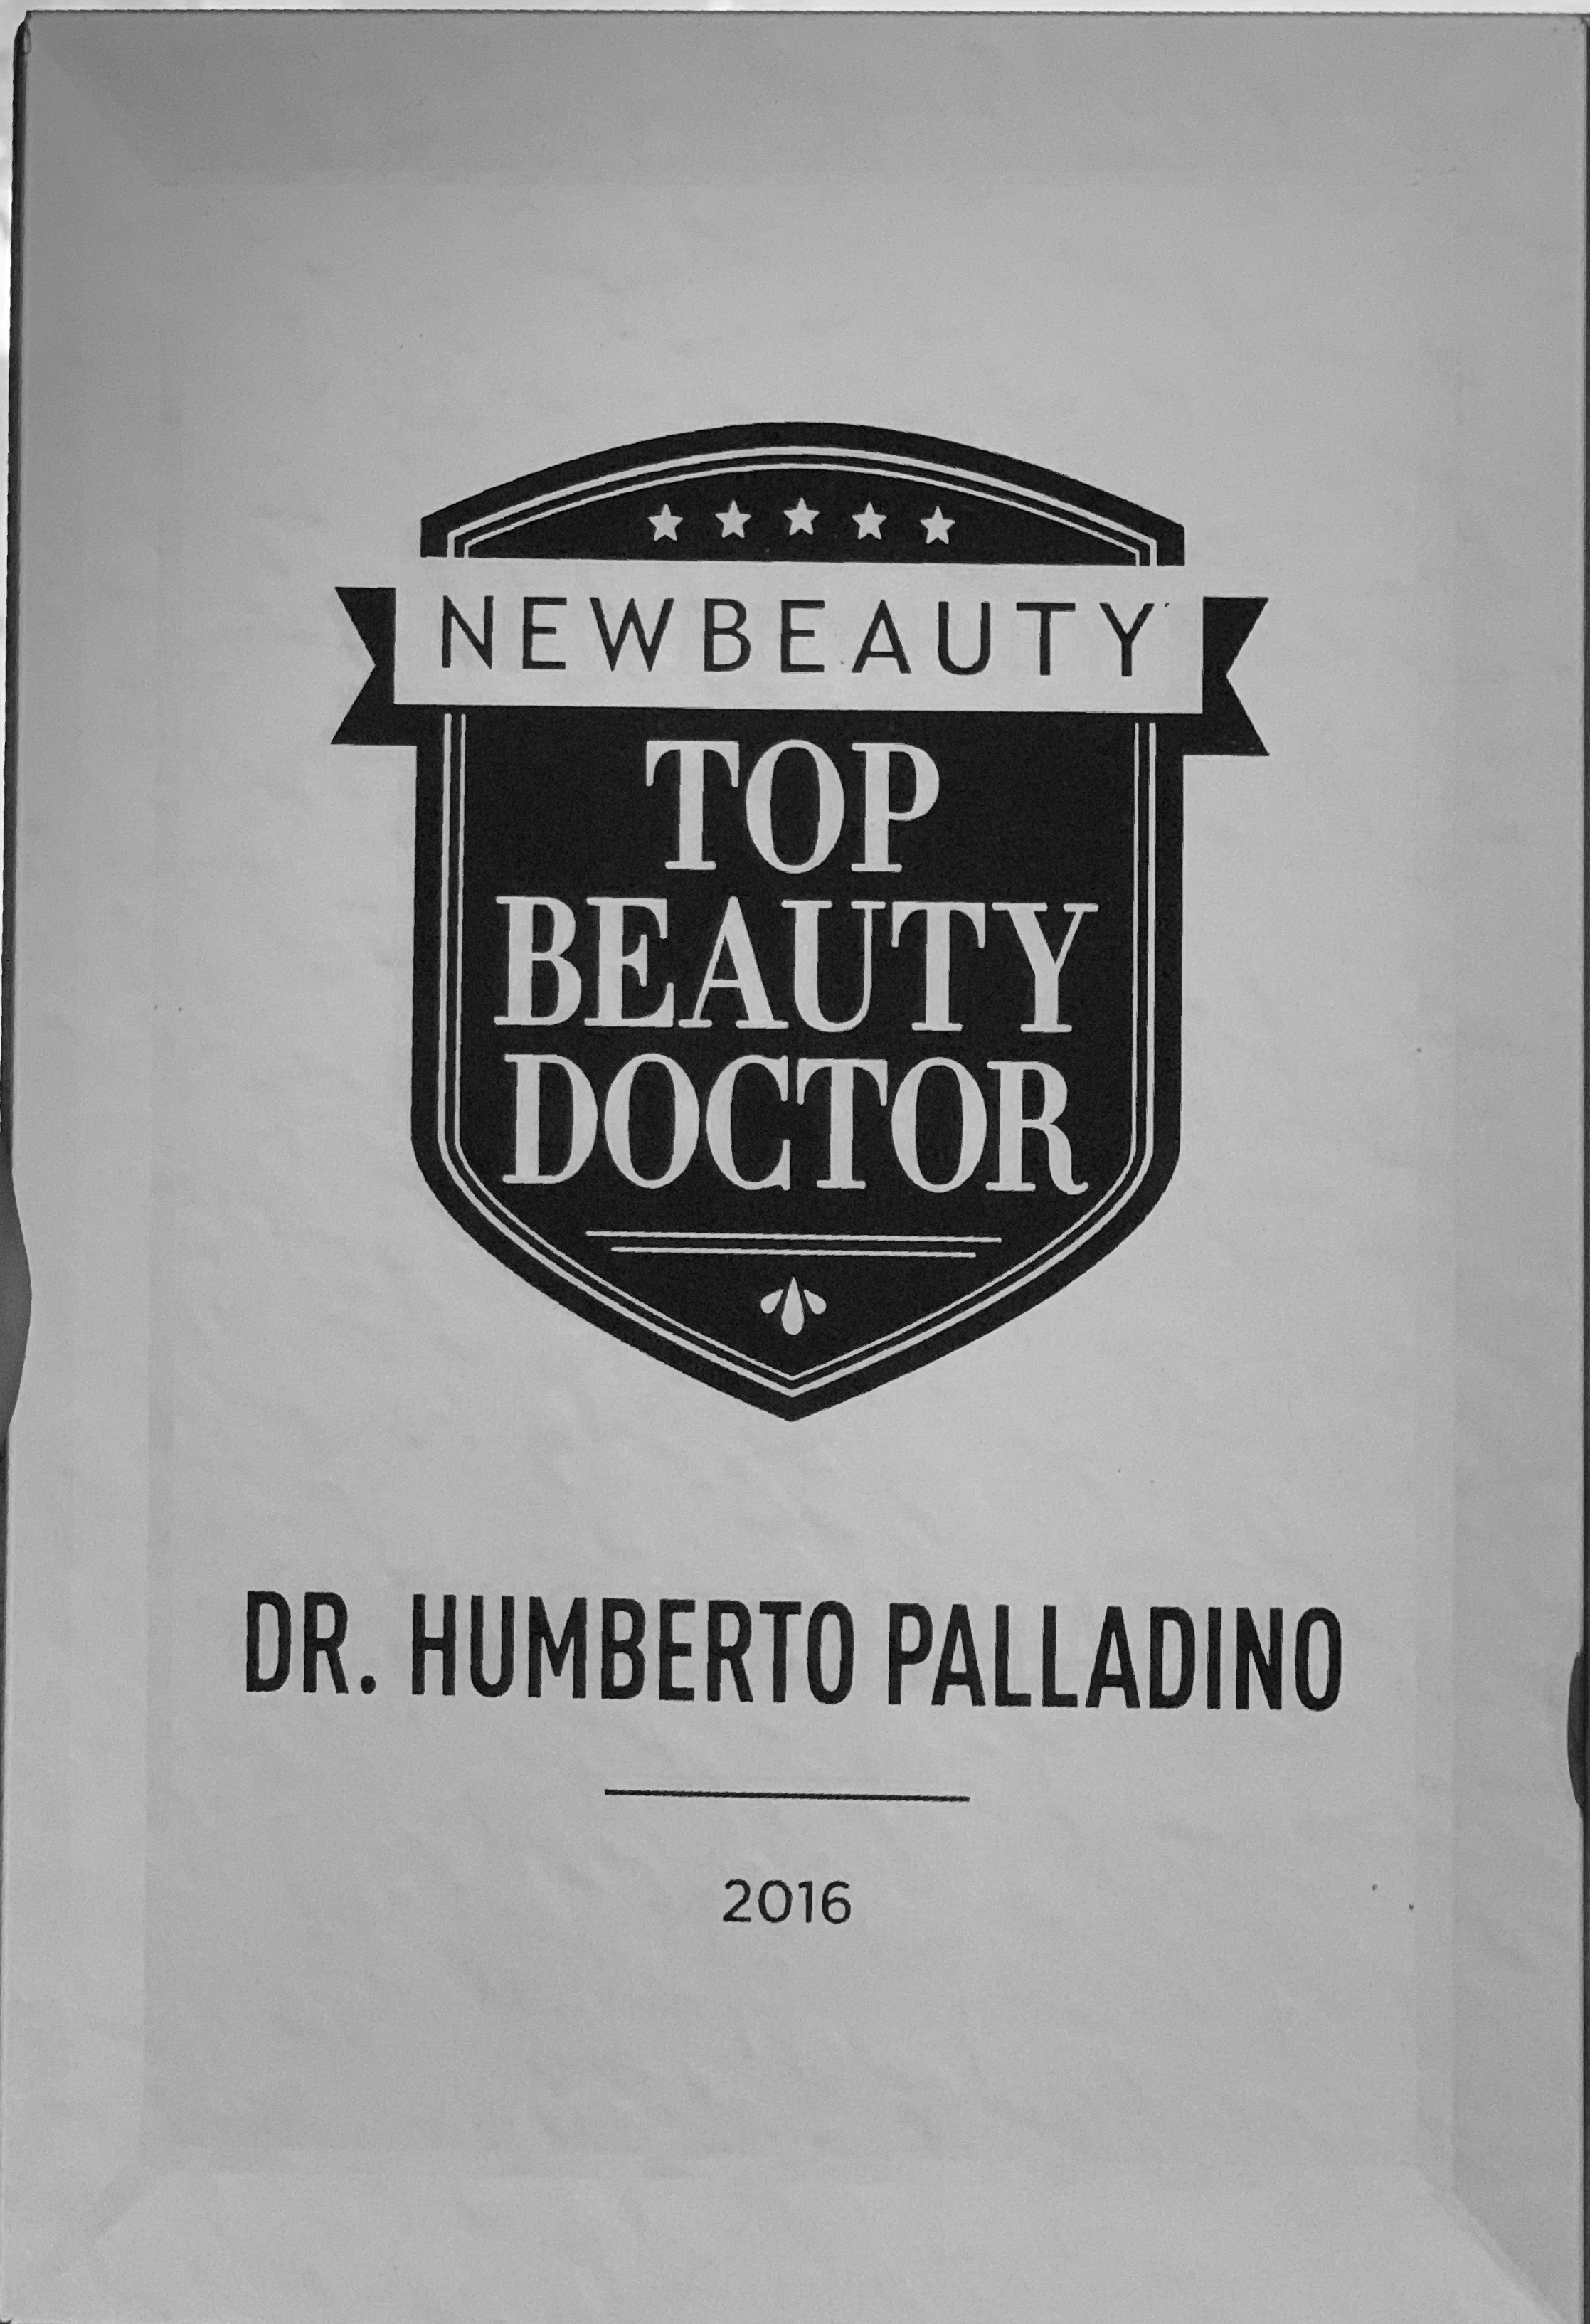 New Beauty Top Doctor 2016